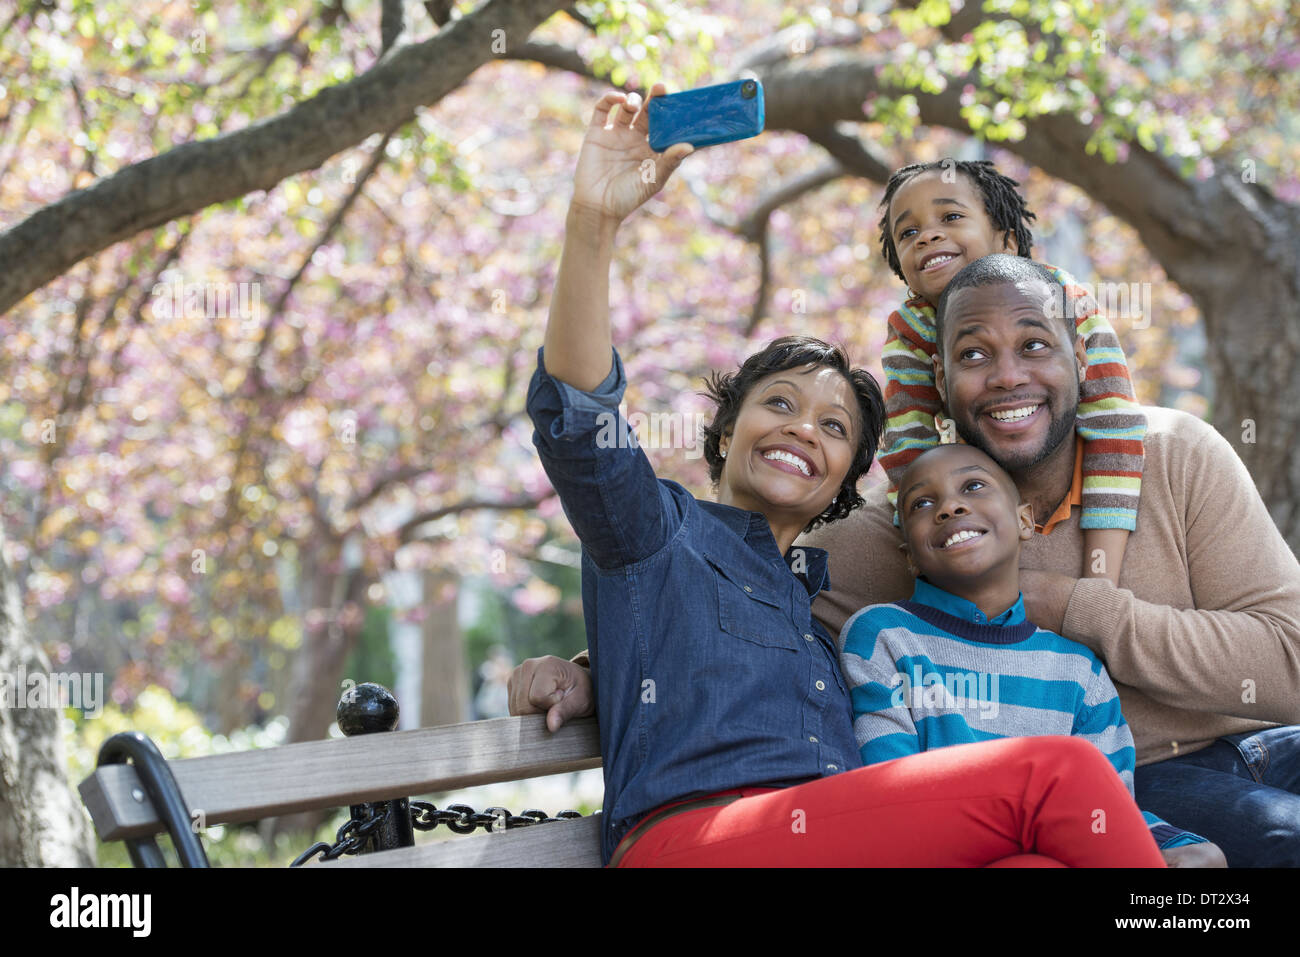 Cherry blossom A woman taking a selfy picture with her smart phone of her family - Stock Image